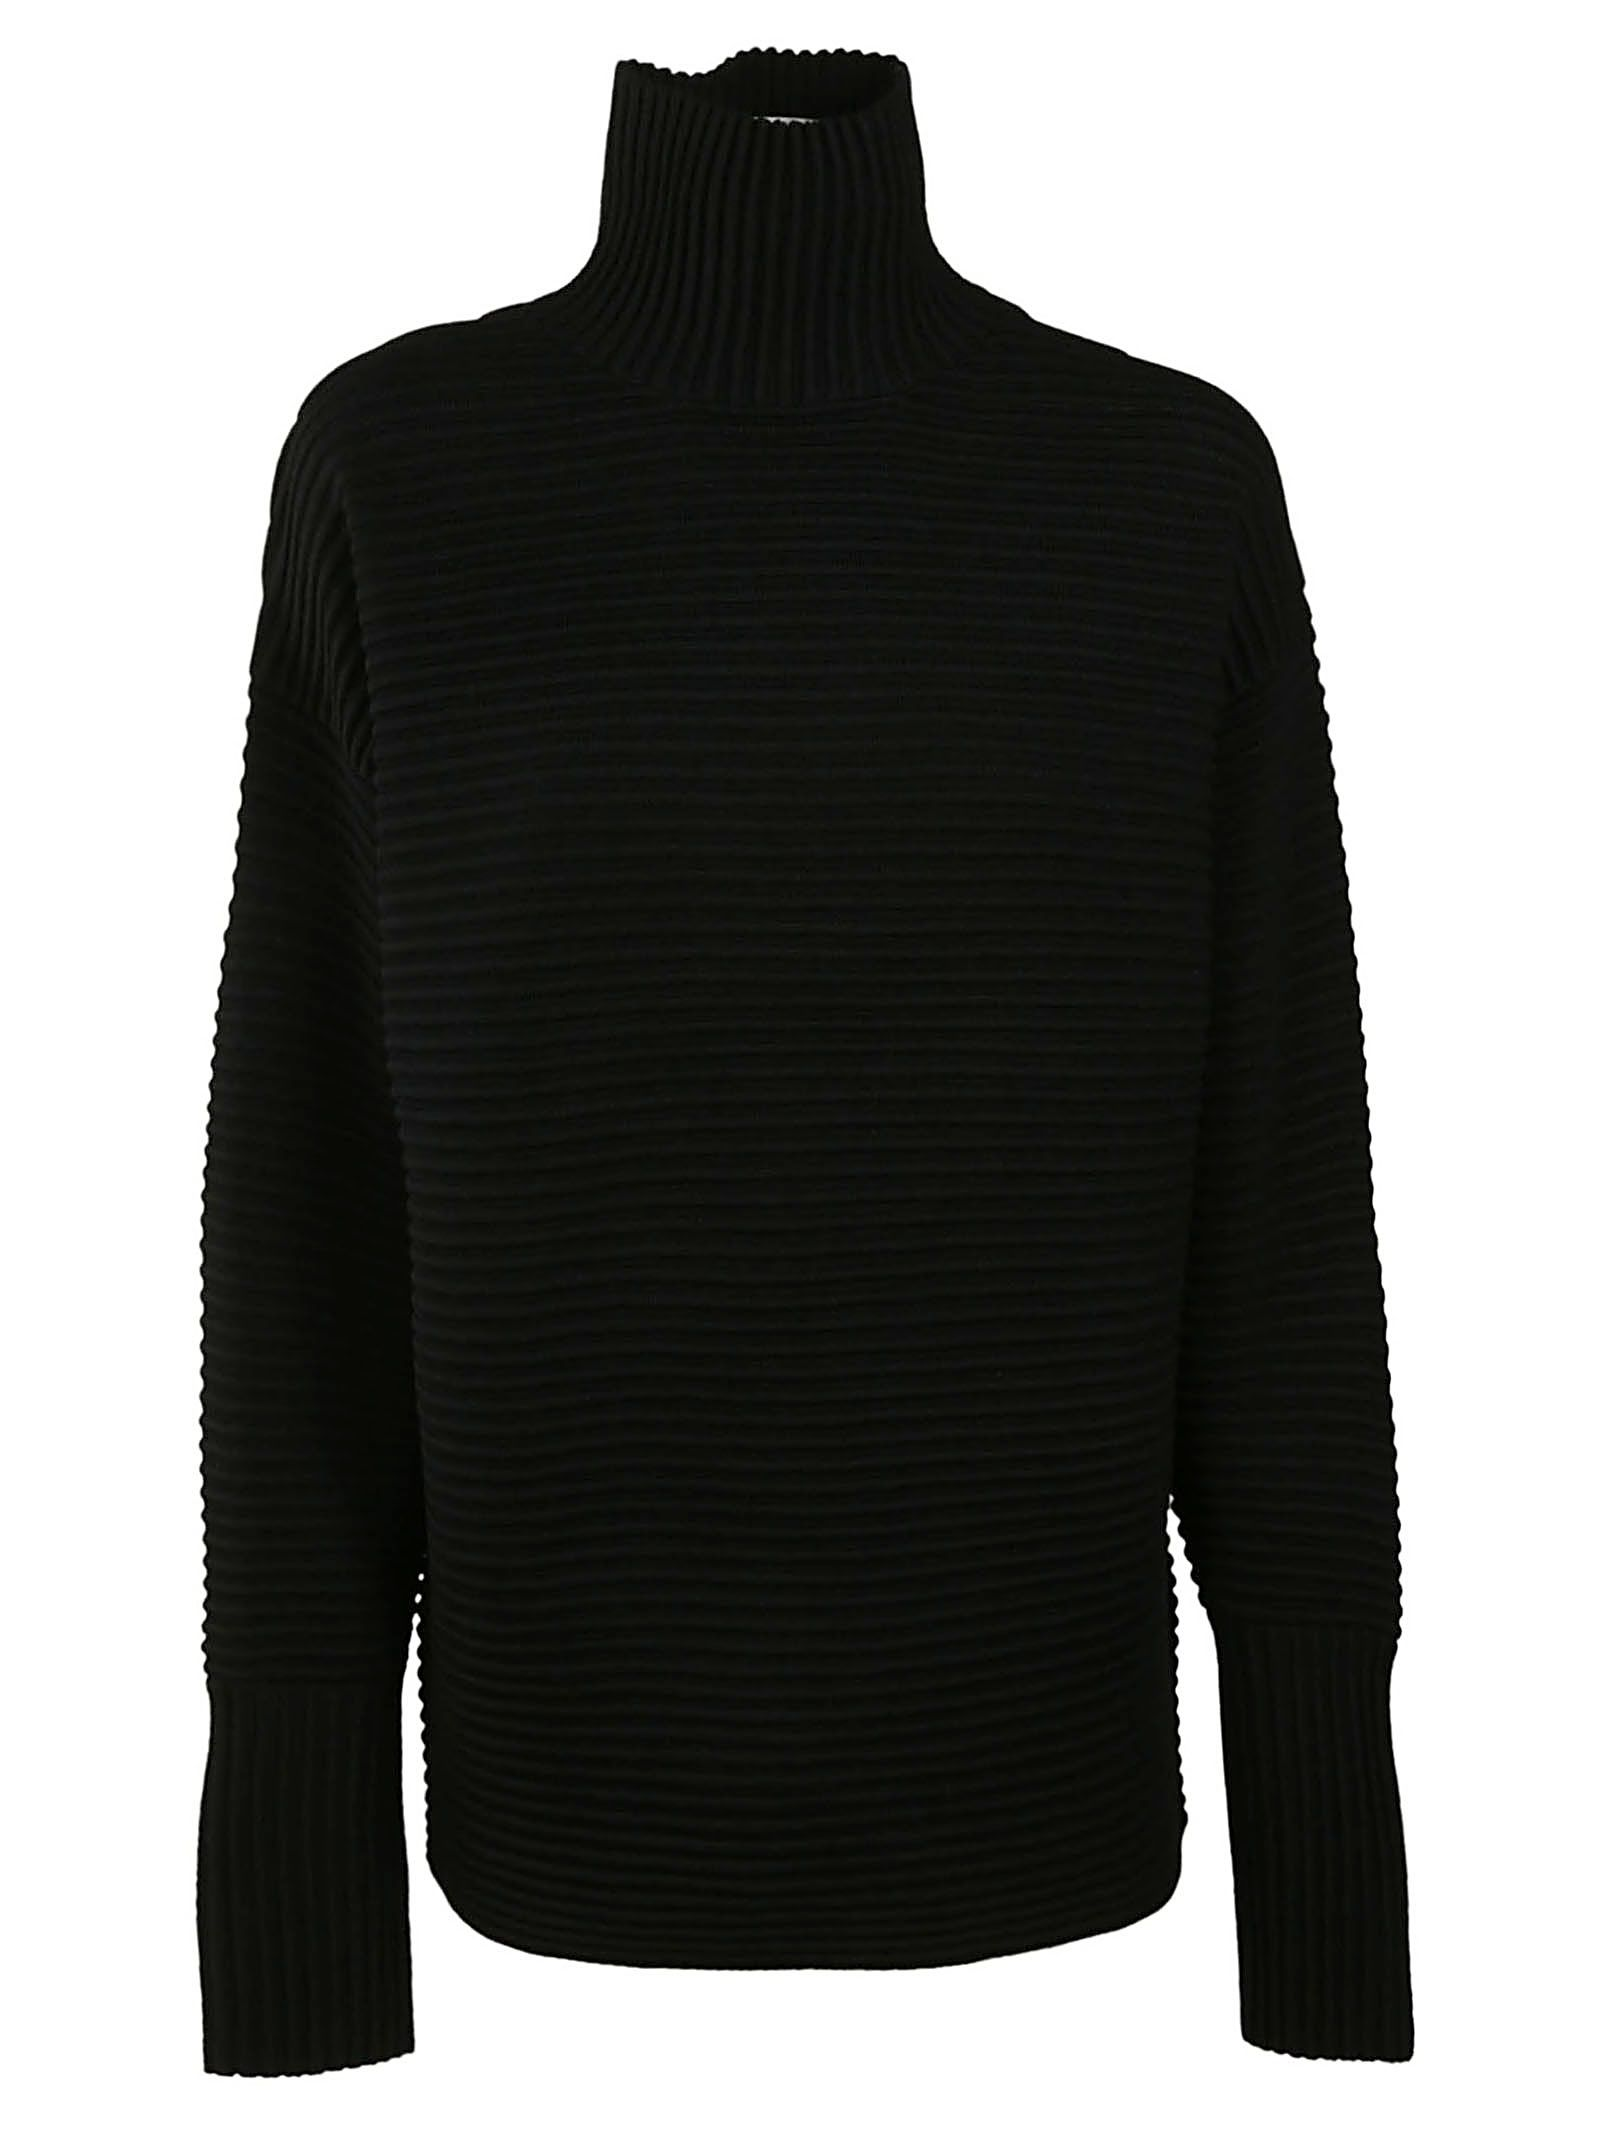 VICTORIA BECKHAM RIBBED SWEATER